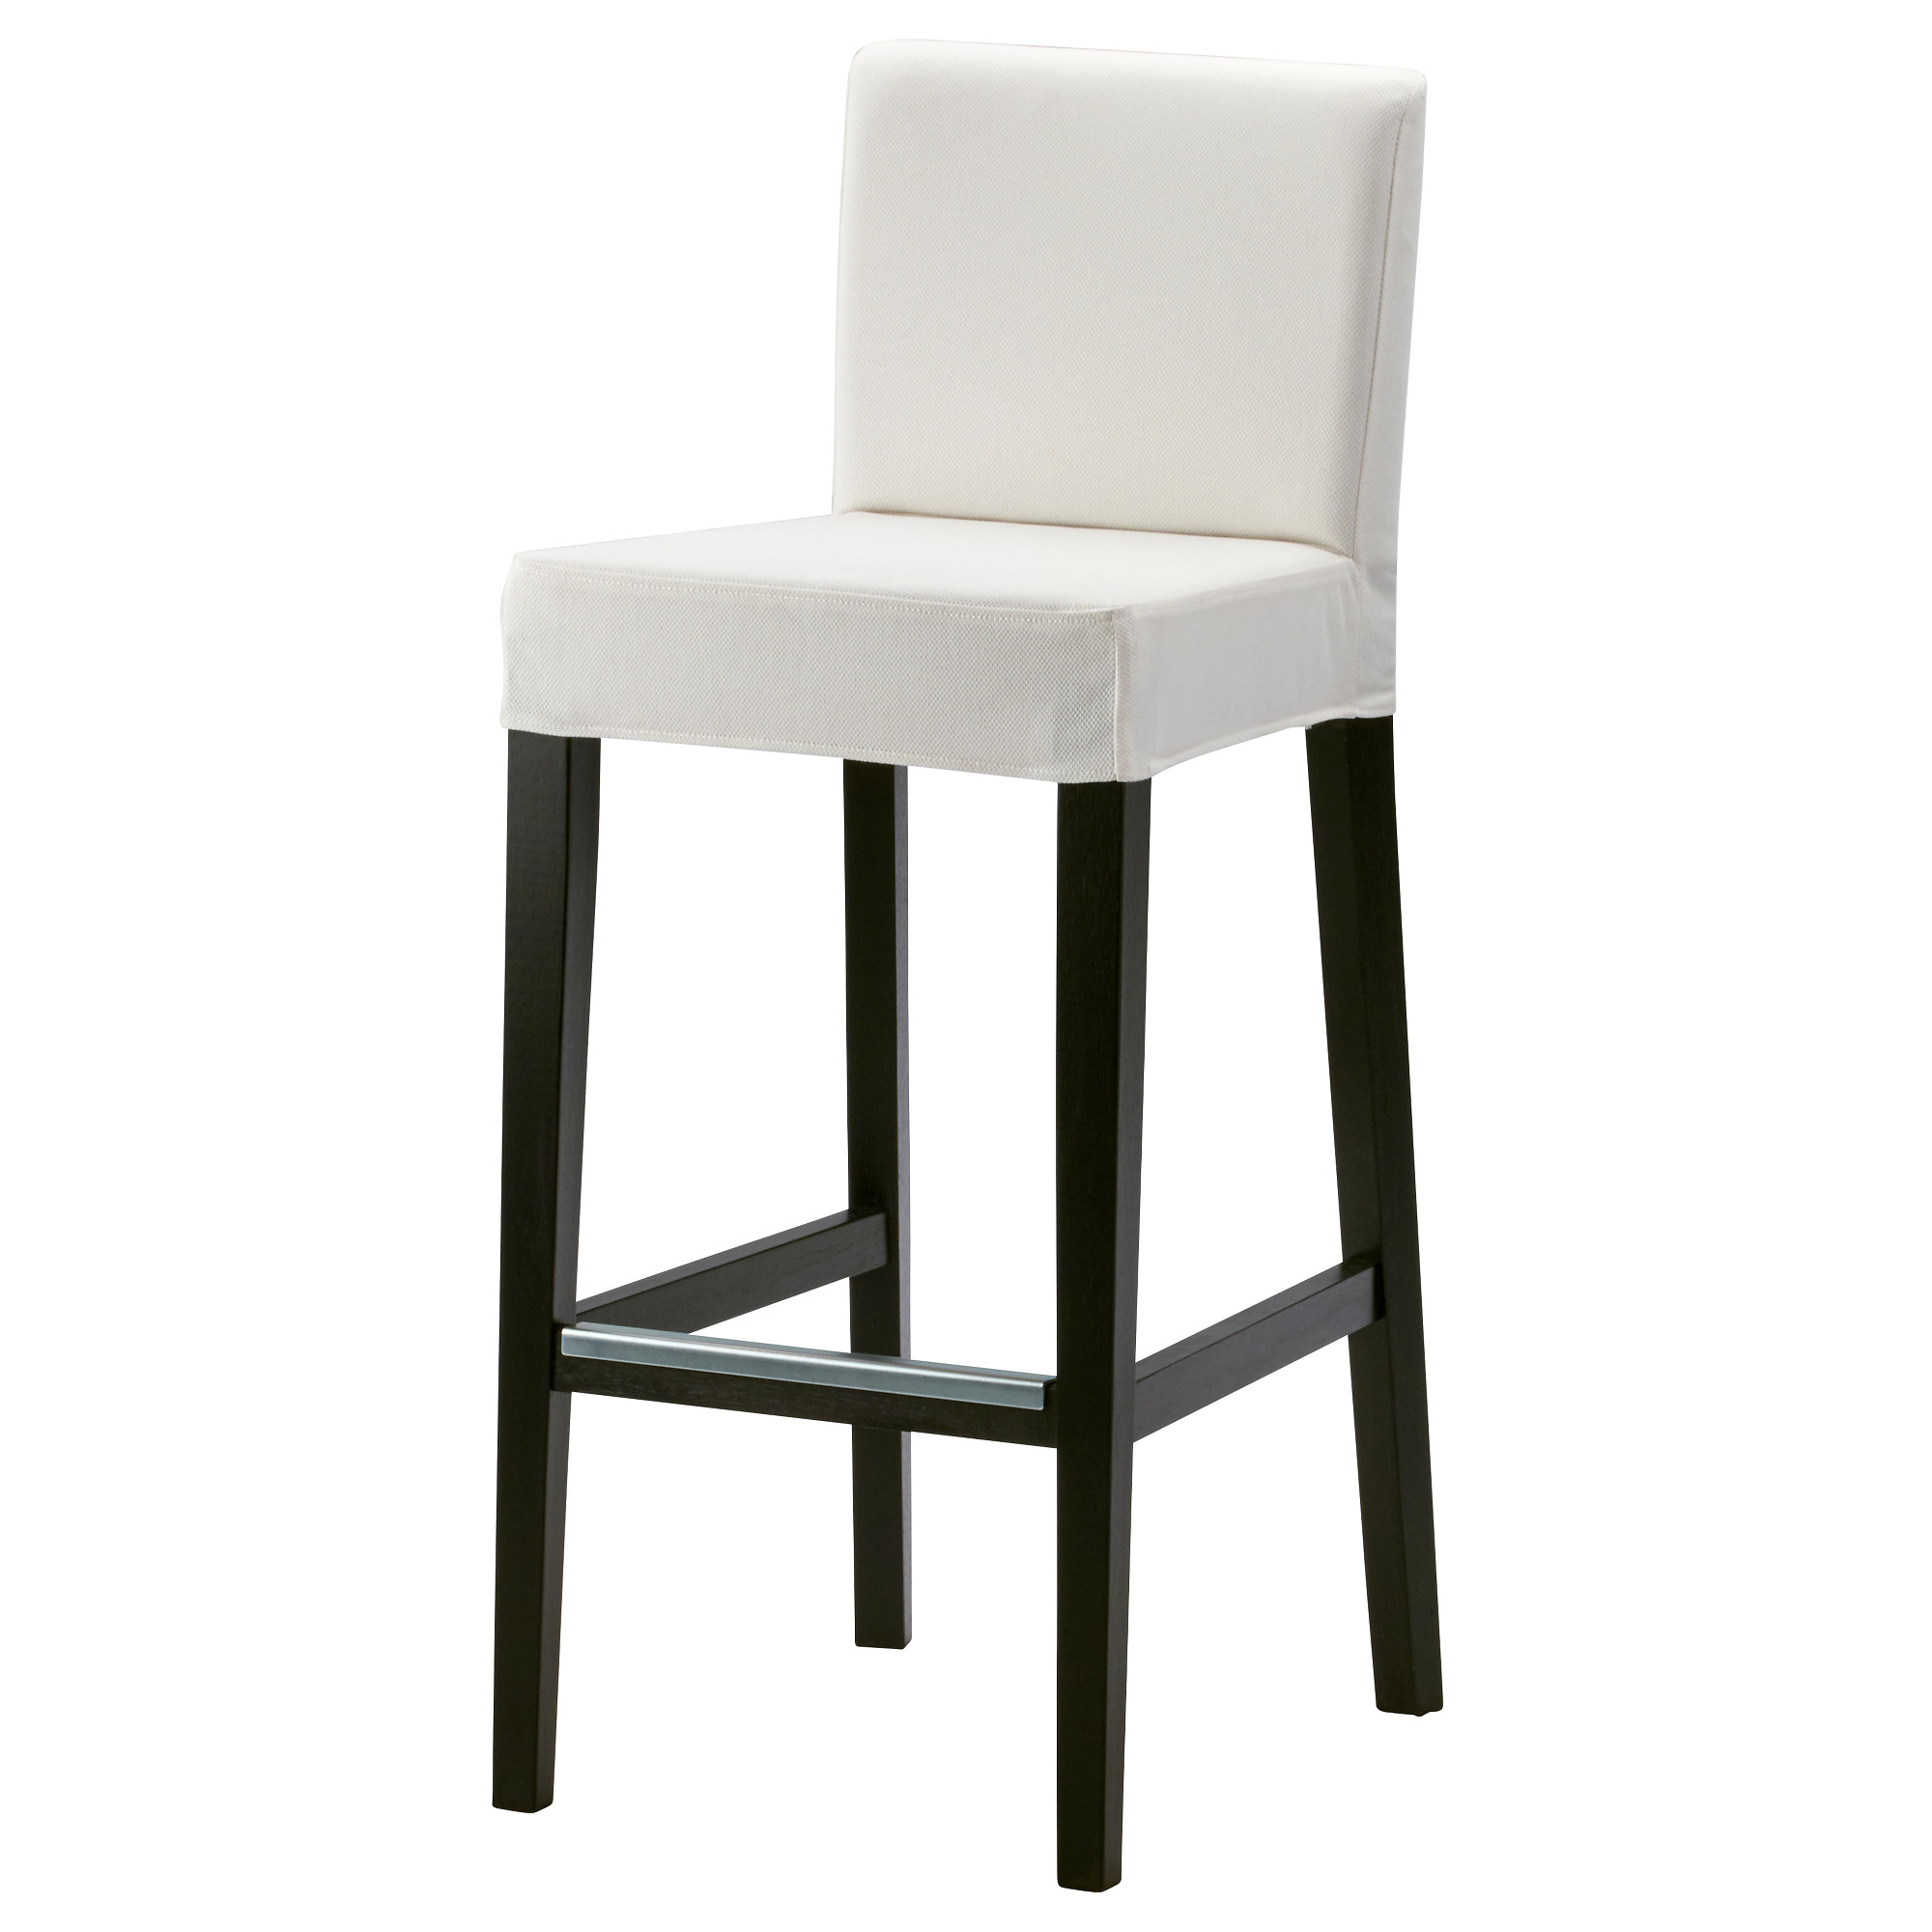 cushion arms swivel glamorous with seat bar brown design padded and back grey stool stools surprising